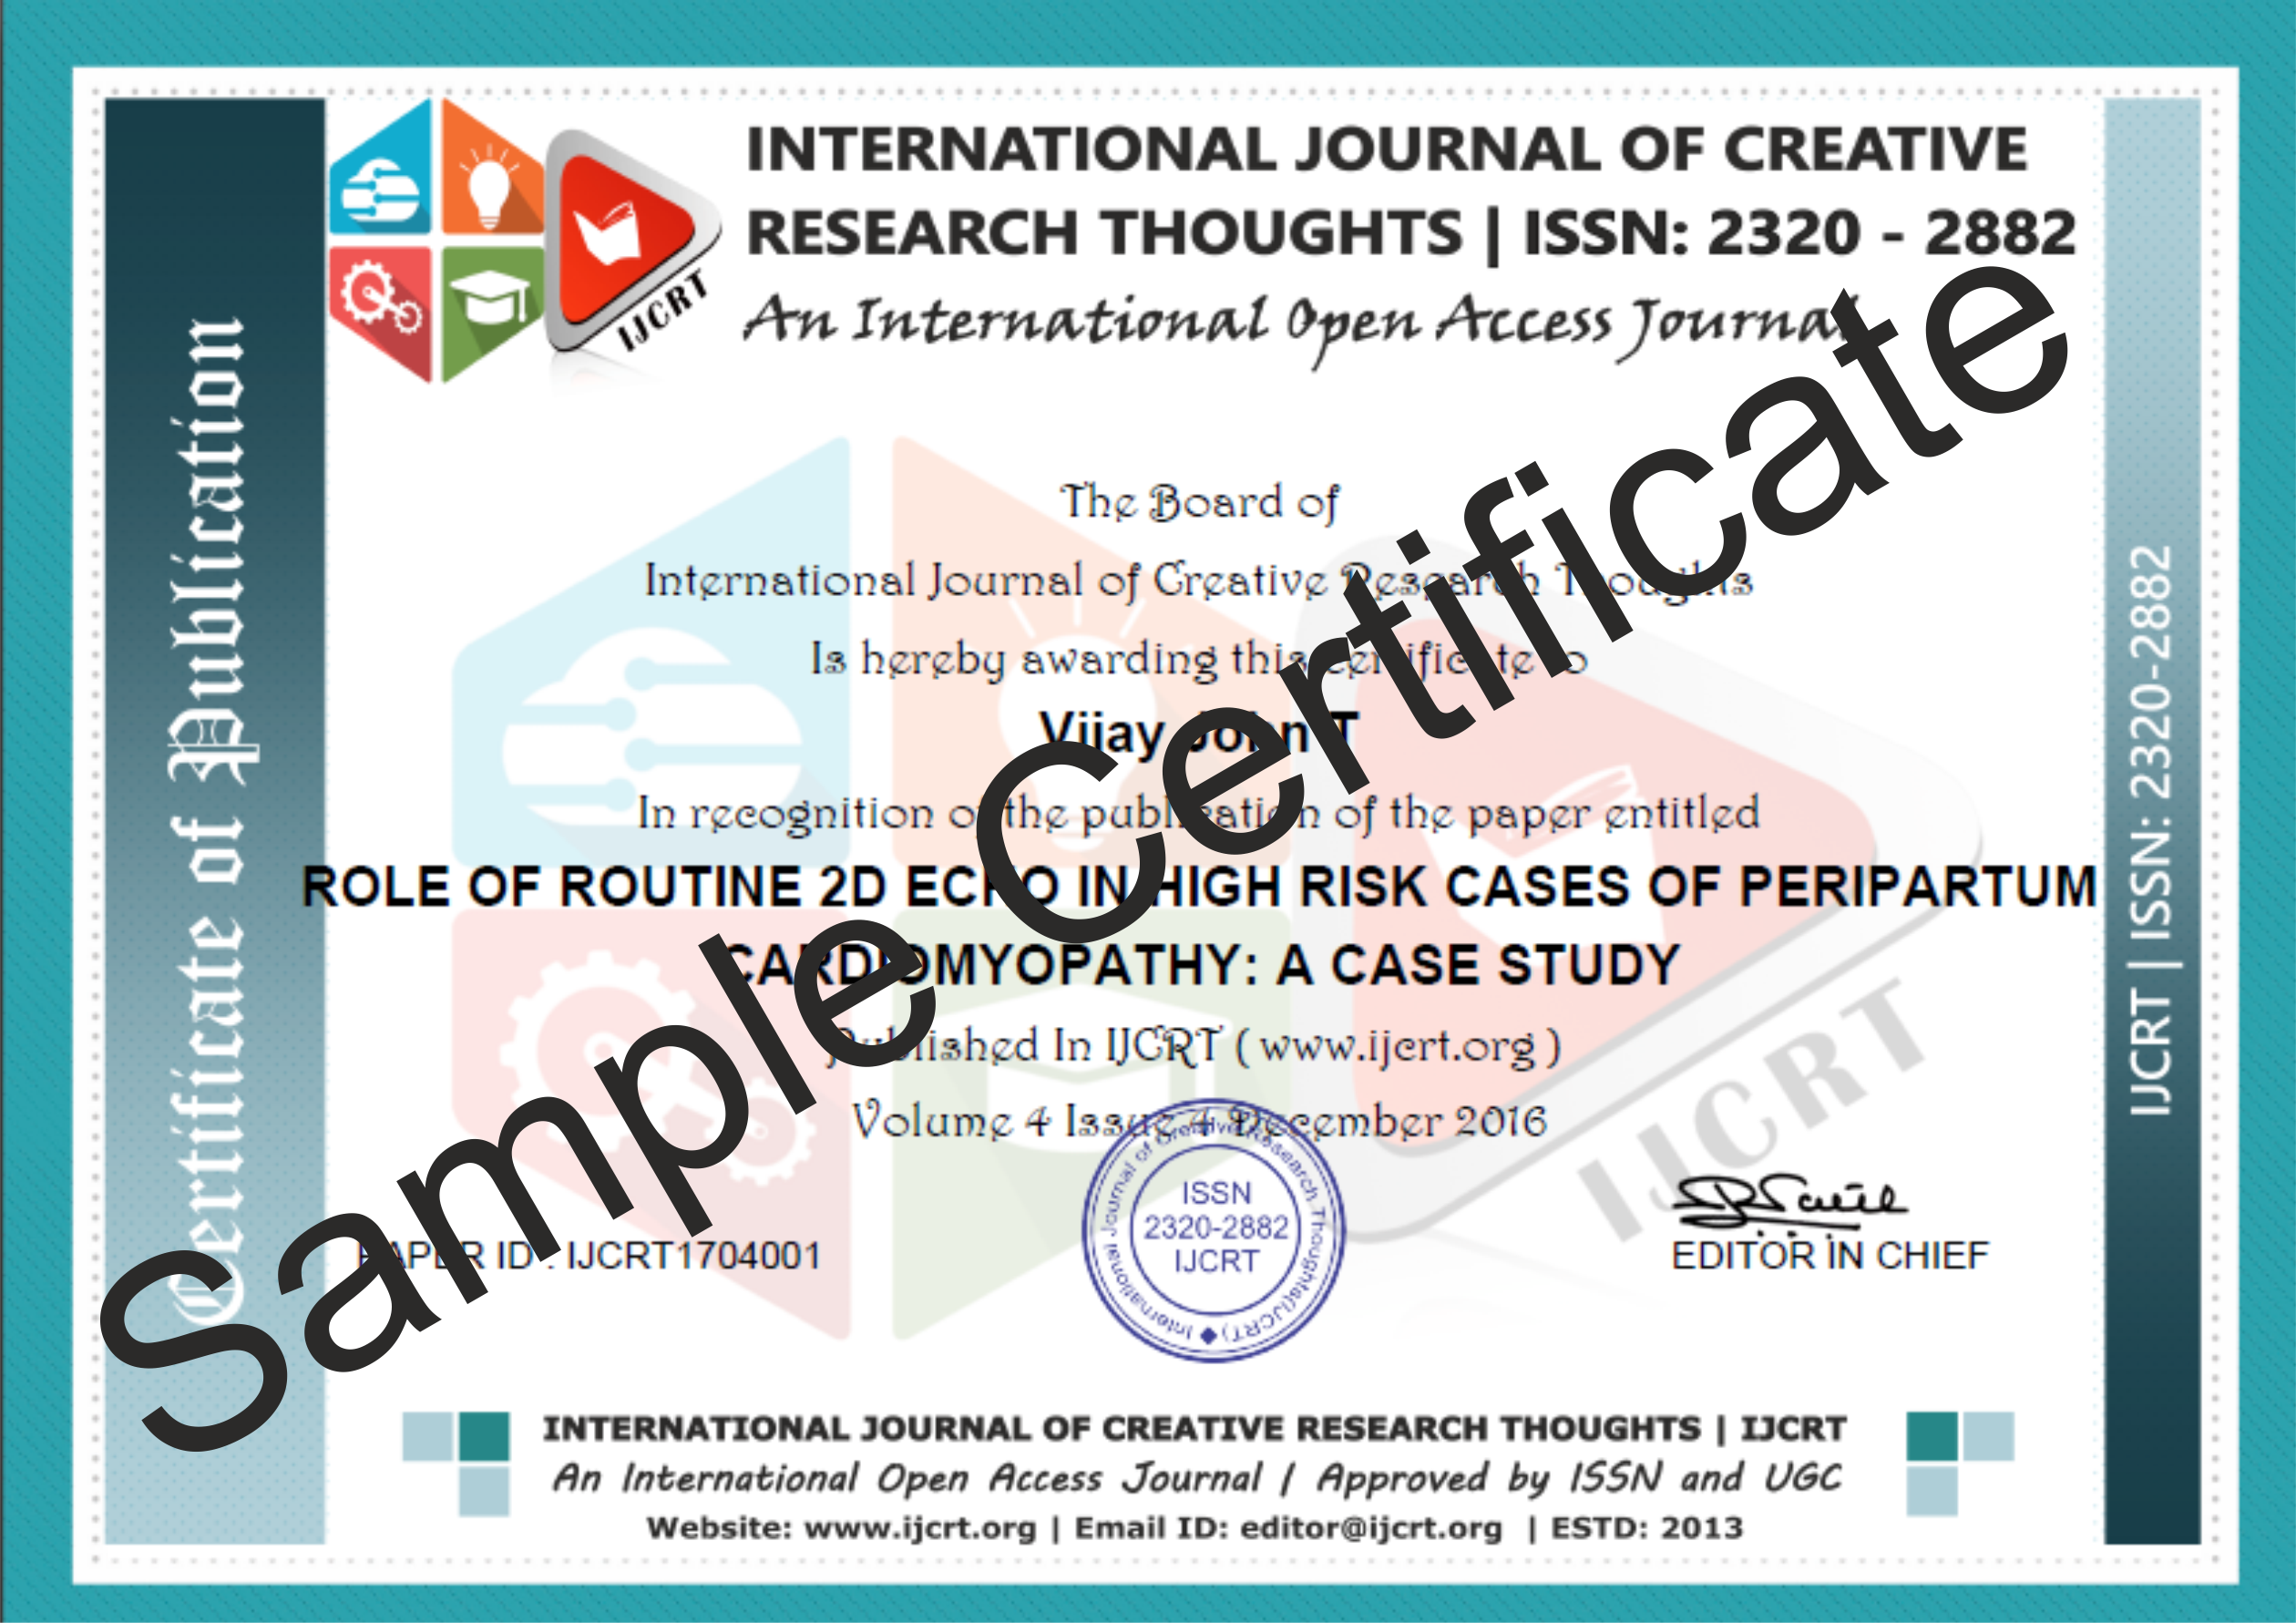 009 Free Online Journals Research Papers Paper Sample Certificate Unique Full